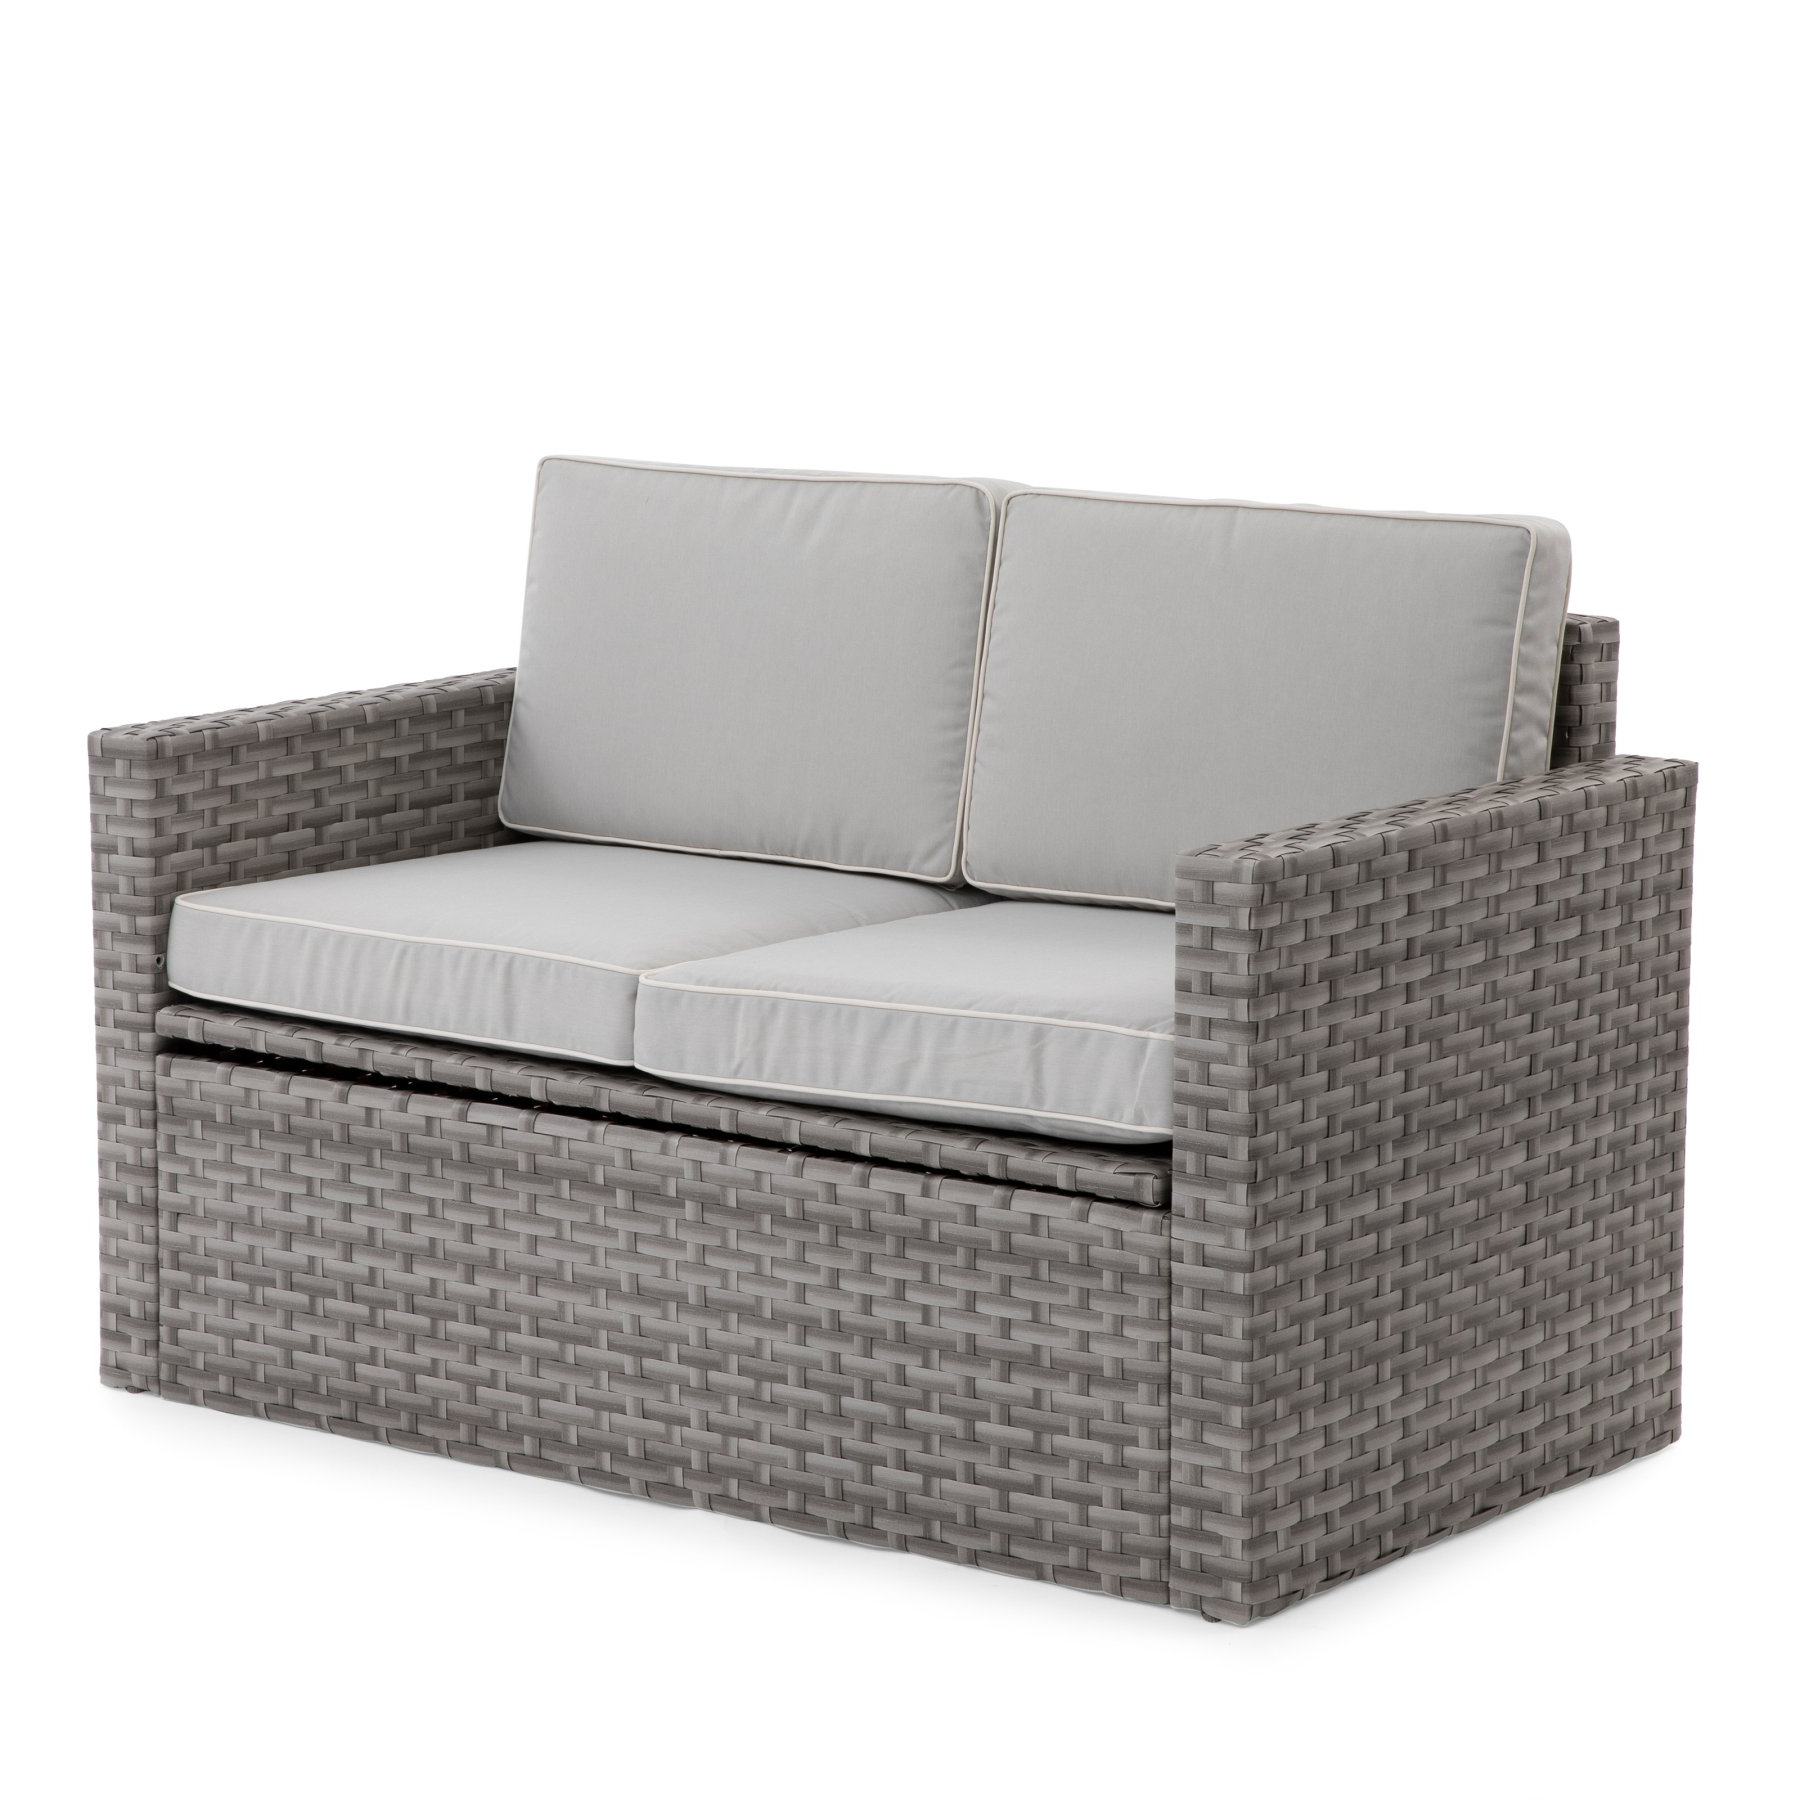 Favorite Freitag Loveseats With Cushions Throughout Coral Coast Berea Outdoor Wicker Storage Loveseat With (View 3 of 20)